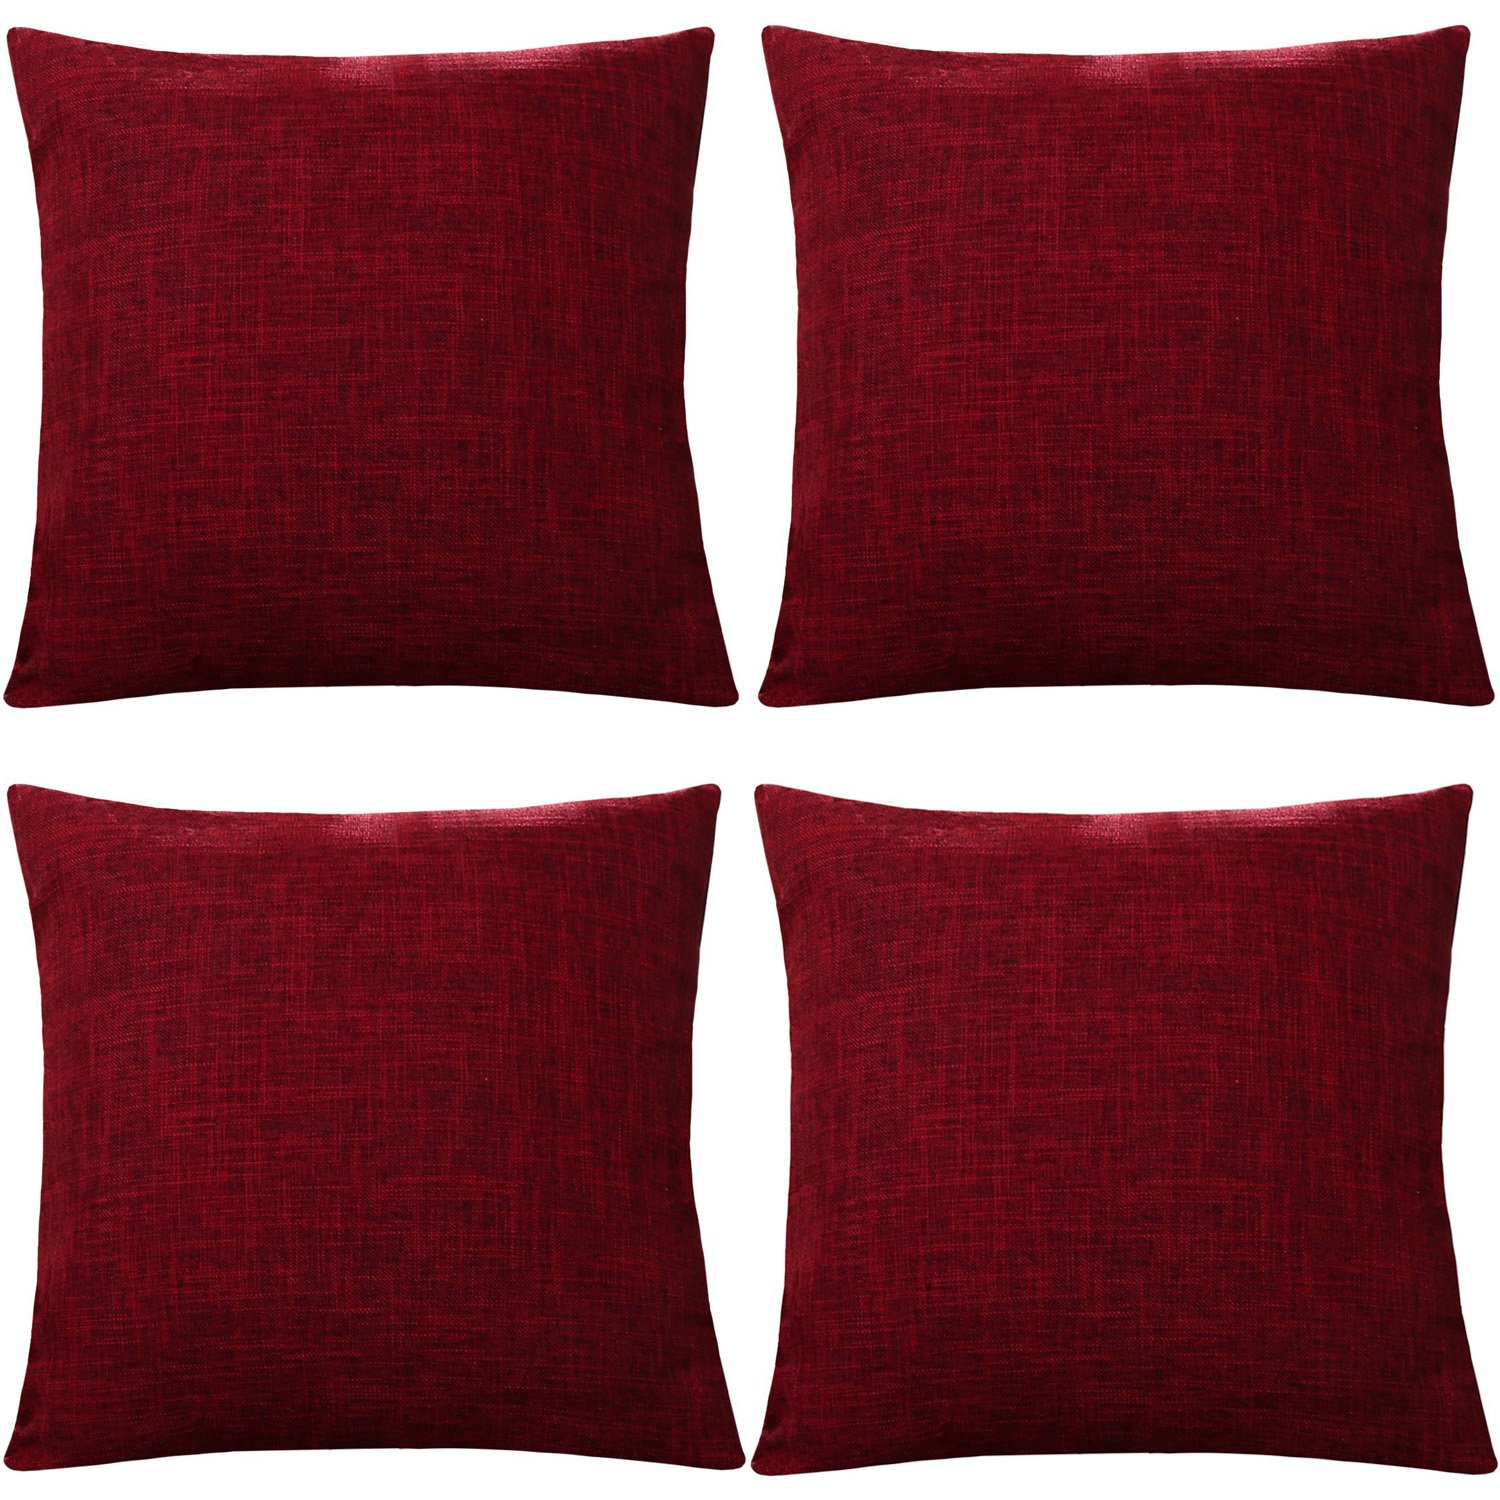 Gonove 4 Pack - 18'X18 Vintage Cotton Linen Pillowcase Square Throw Pillow Case Decorative Cushion Cover for Sofa, Bed, Chair (Black)